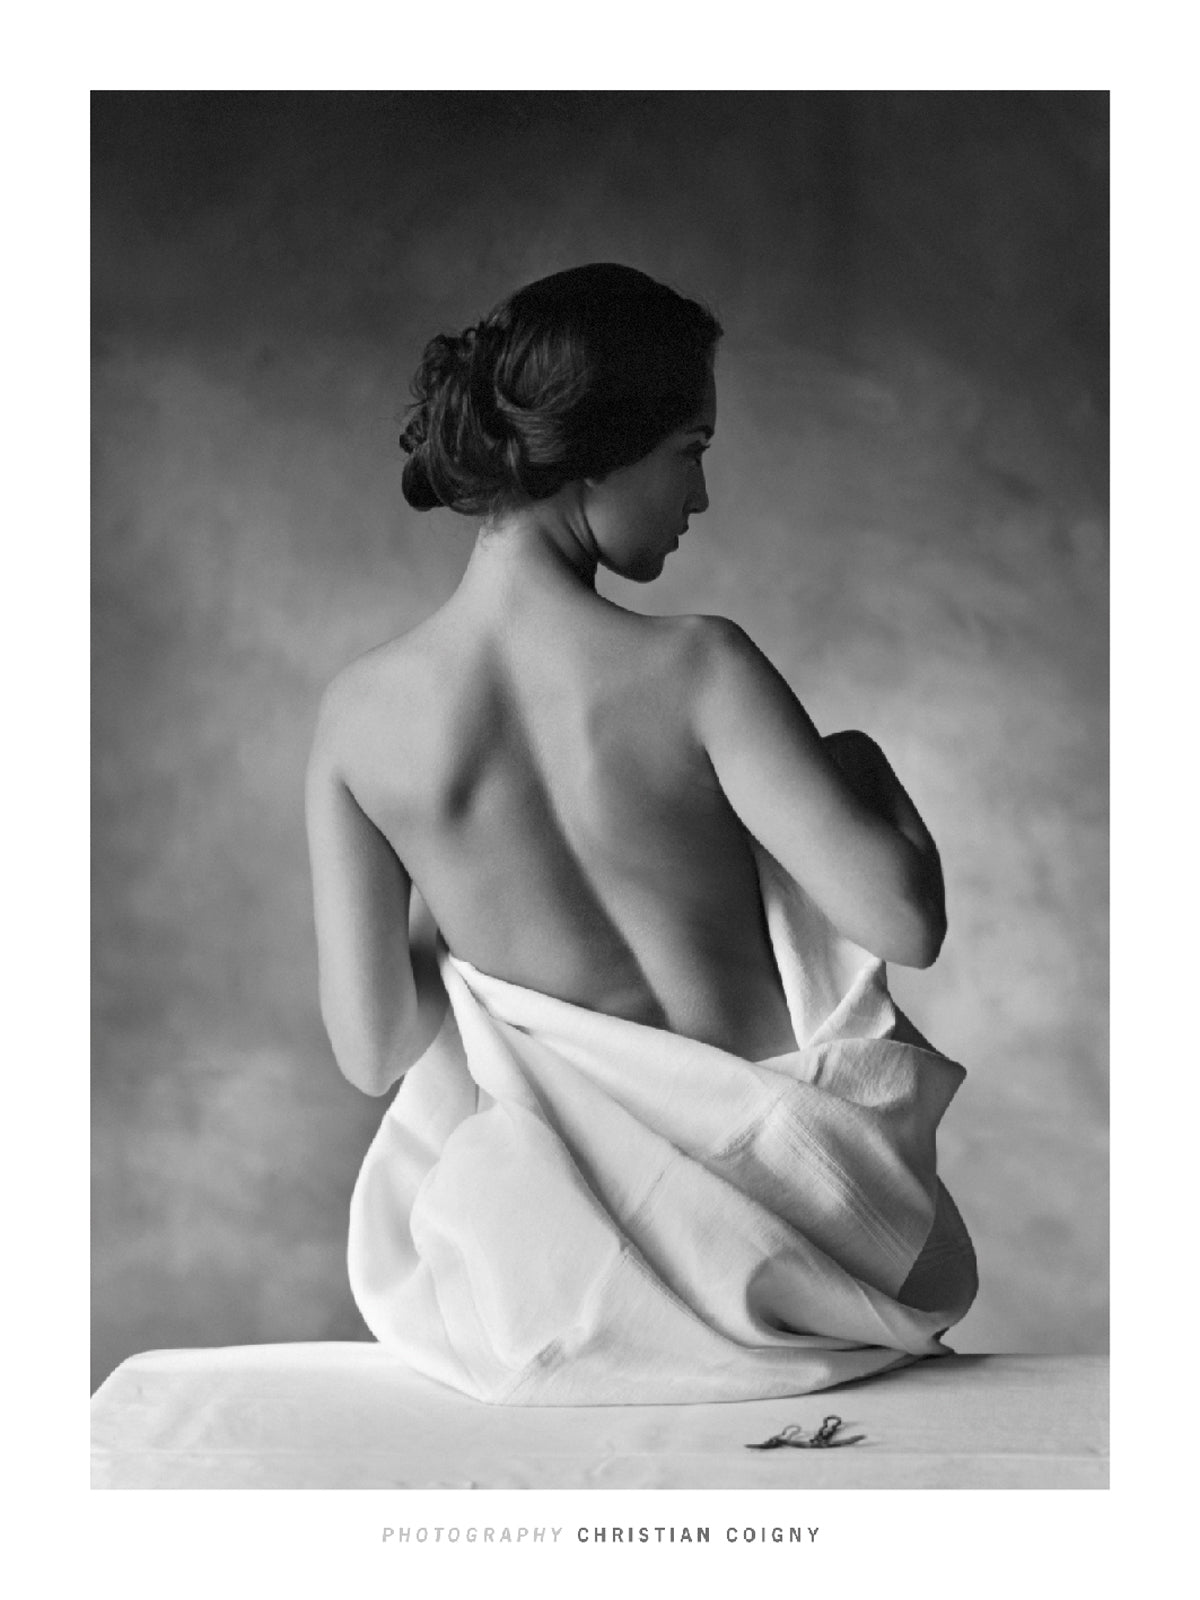 Christian Coigny - Modesty